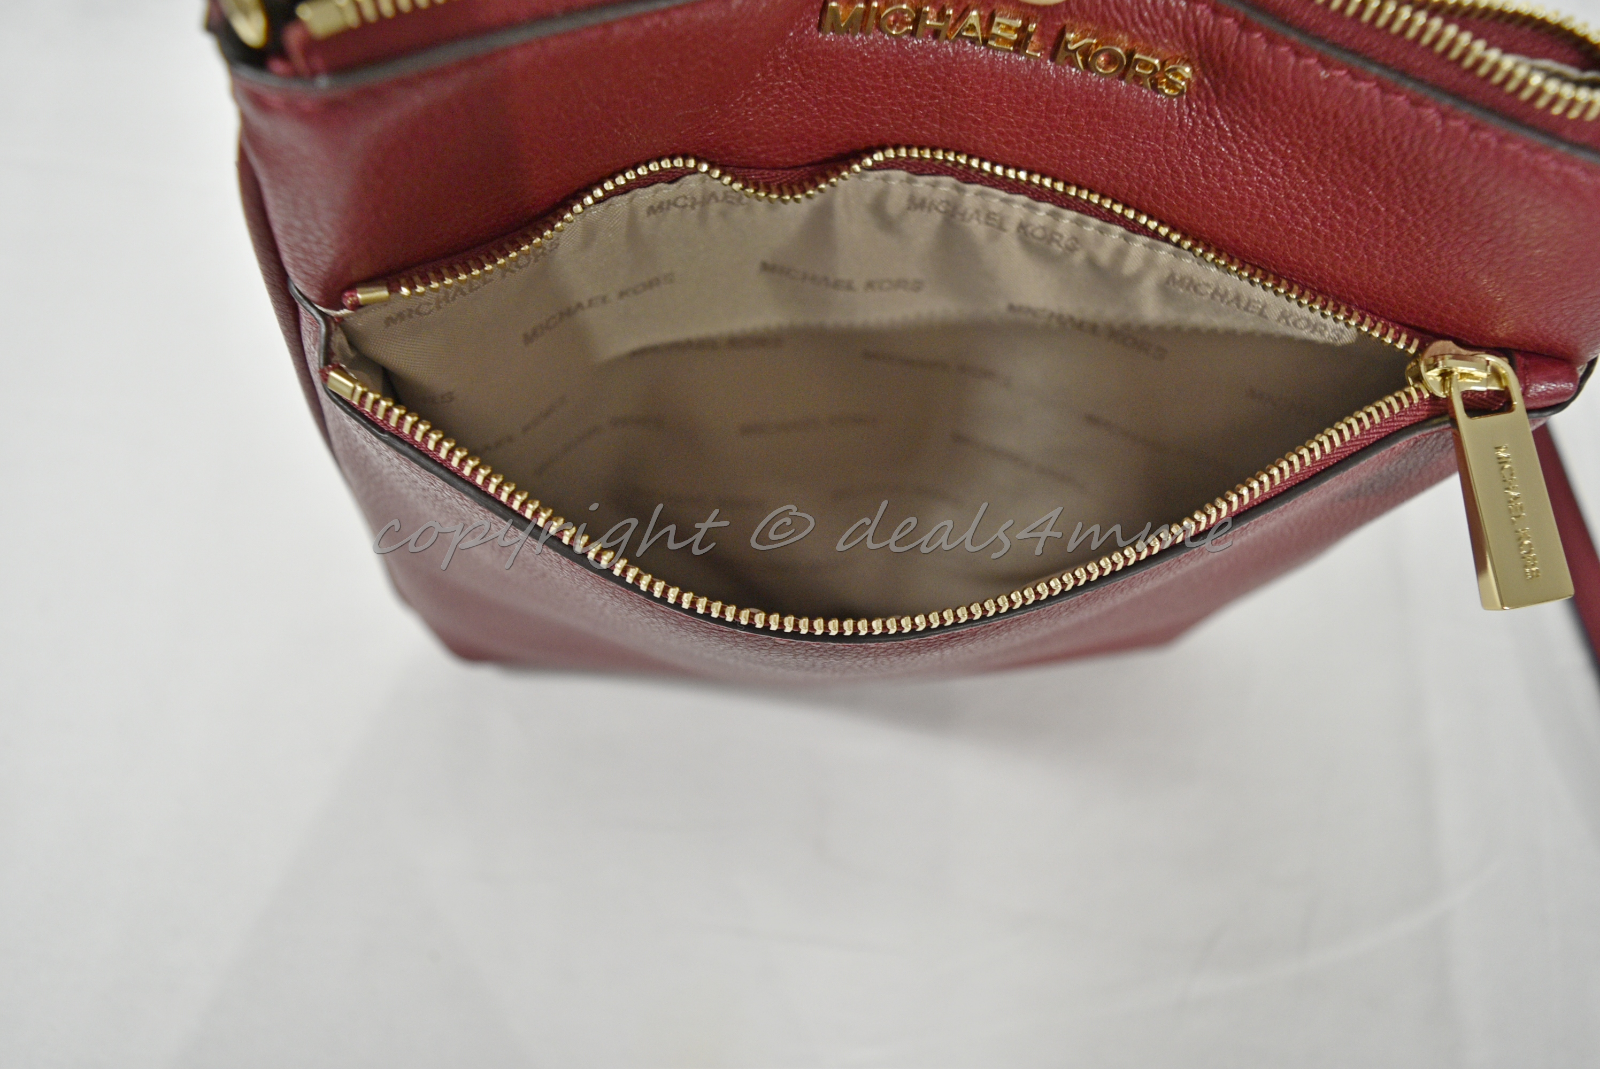 a31e0561b323 NWT Michael Kors Riley Leather Small Flat Crossbody / Shoulder Bag in Cherry  Red